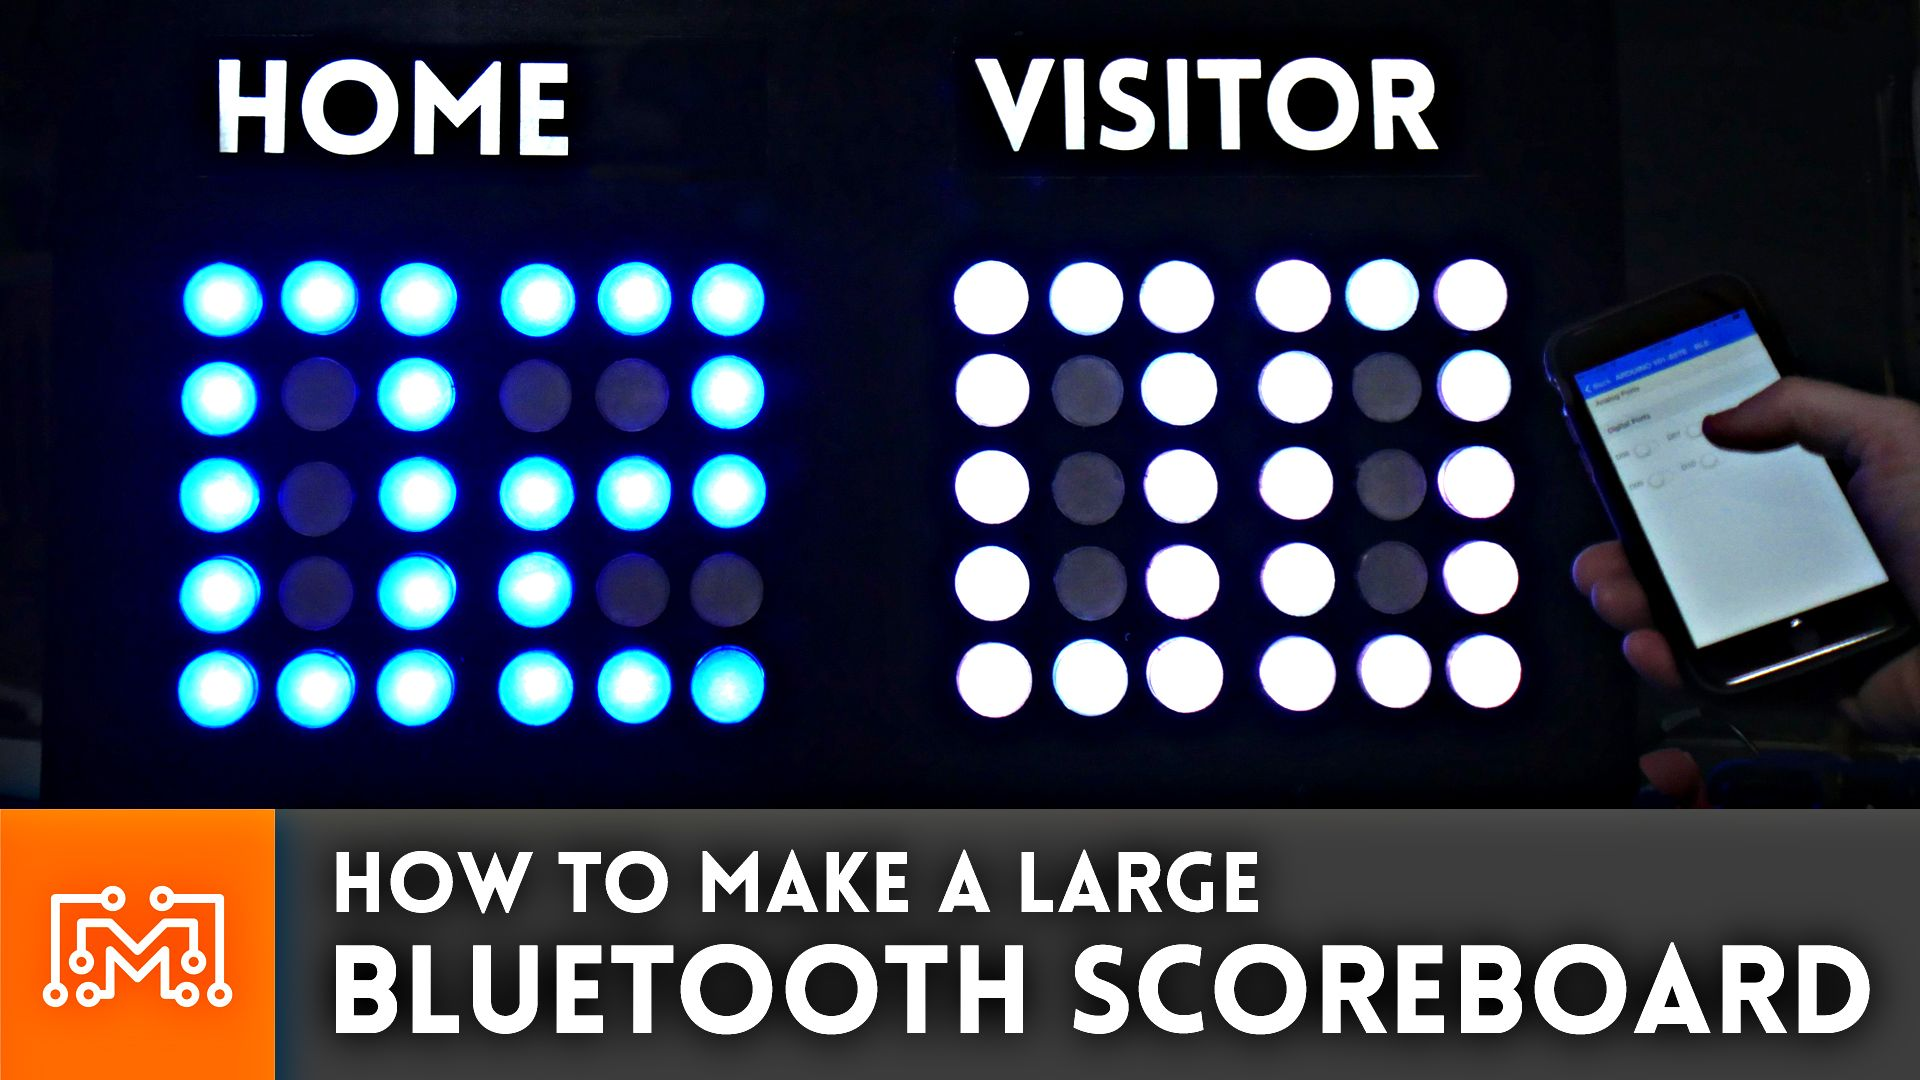 How To Make A Large Bluetooth Scoreboard Arduino Projects Diy Scoreboard Printing Supplies